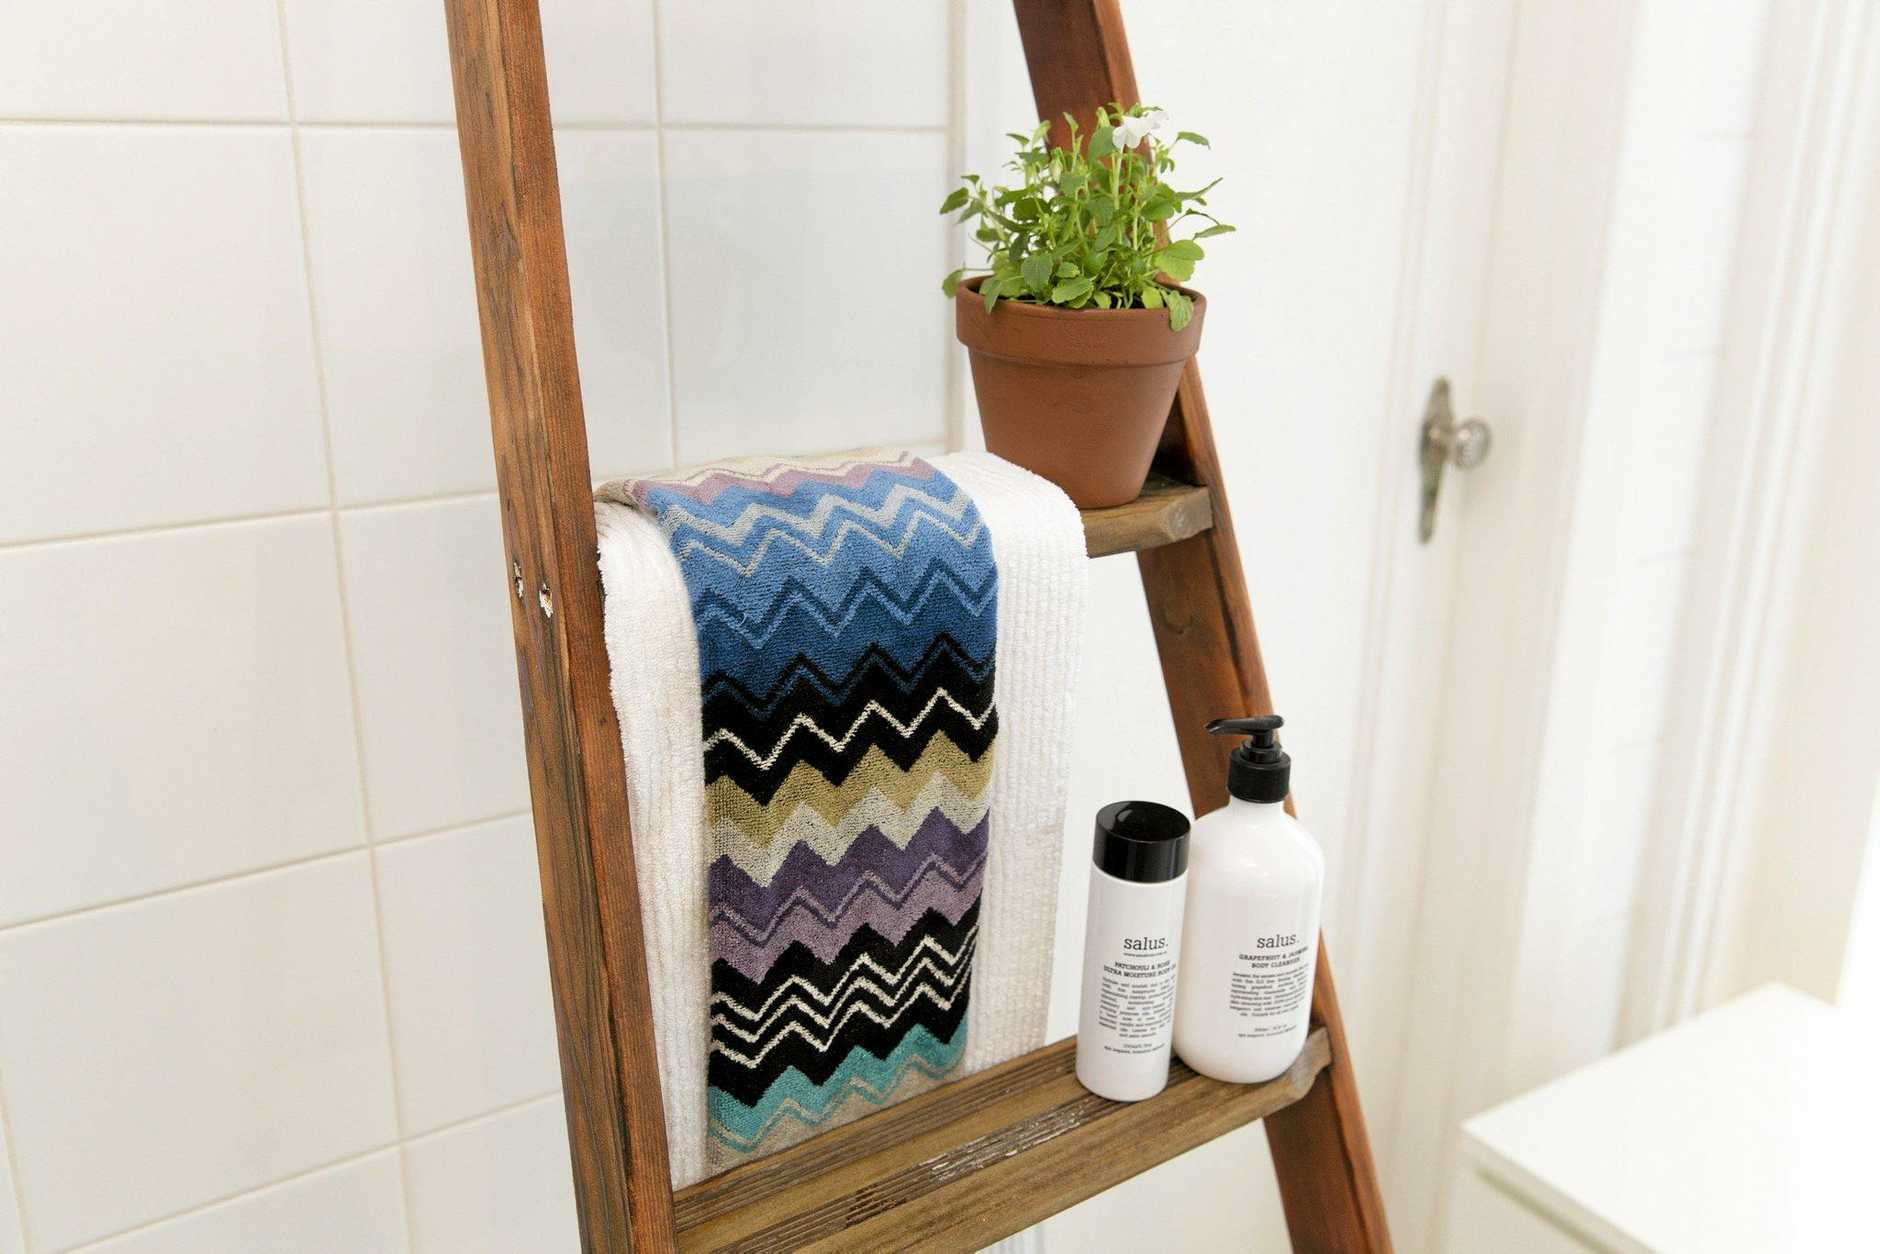 Recycle and old wooden ladder and turn it into a bathroom rung.